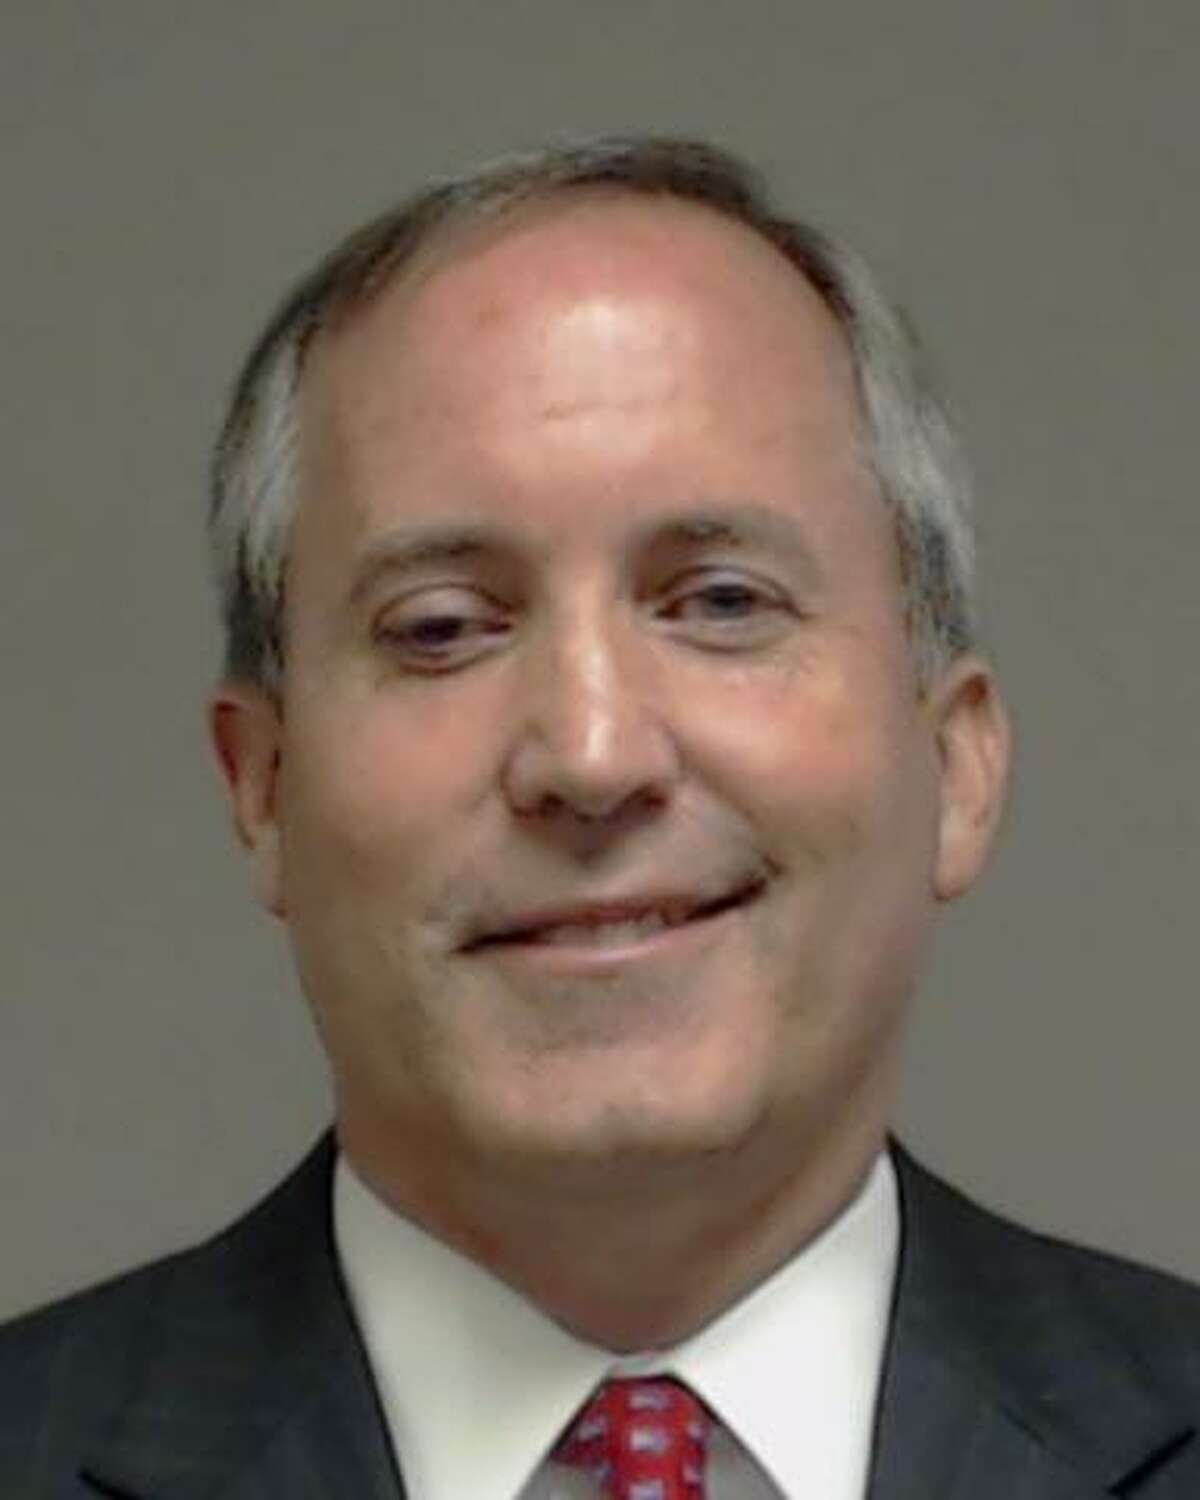 Texas Attorney General Ken Paxton was indicted on three felony fraud charges stemming from an alleged investment scheme into the McKinney-based technology company Servergy, as well as his failure to register as an investment advisor representative with the state.